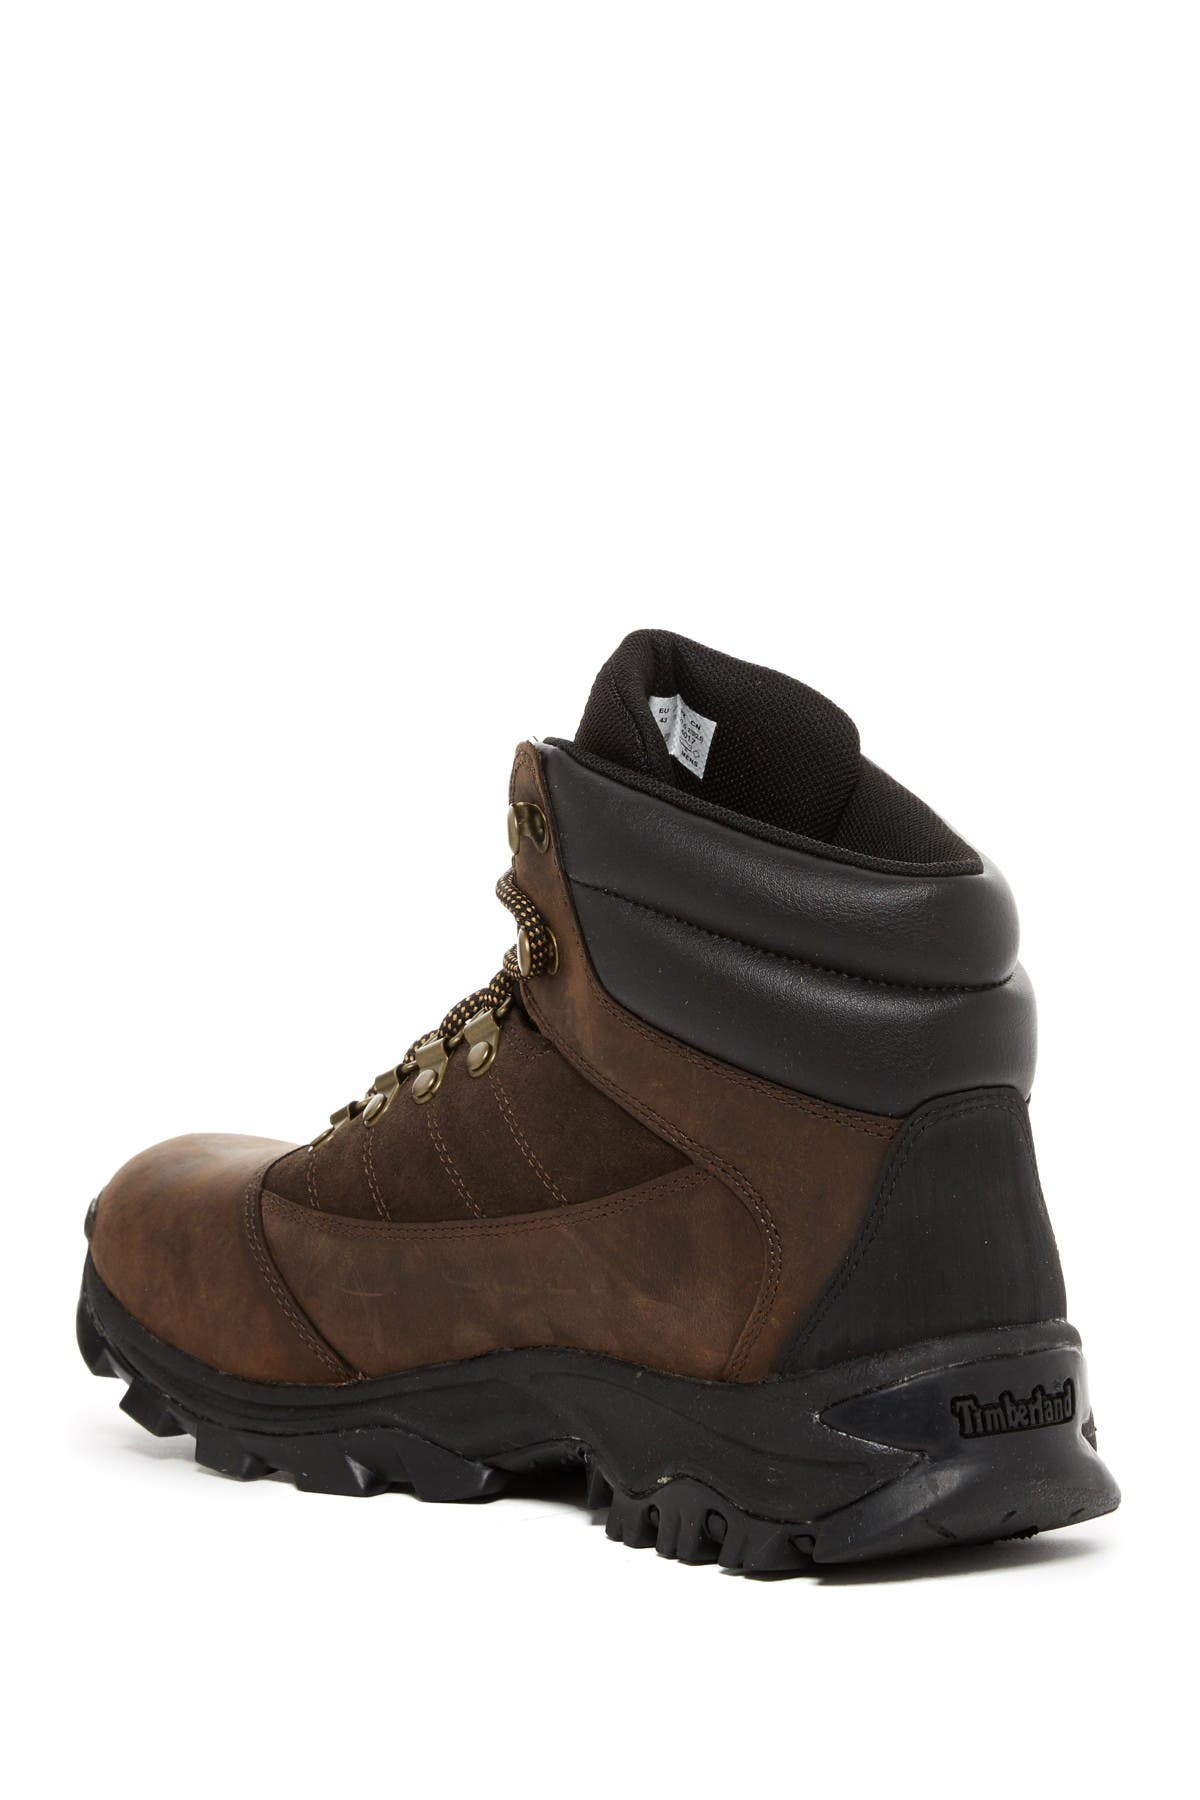 Timberland | Rangeley Mid Leather Boot